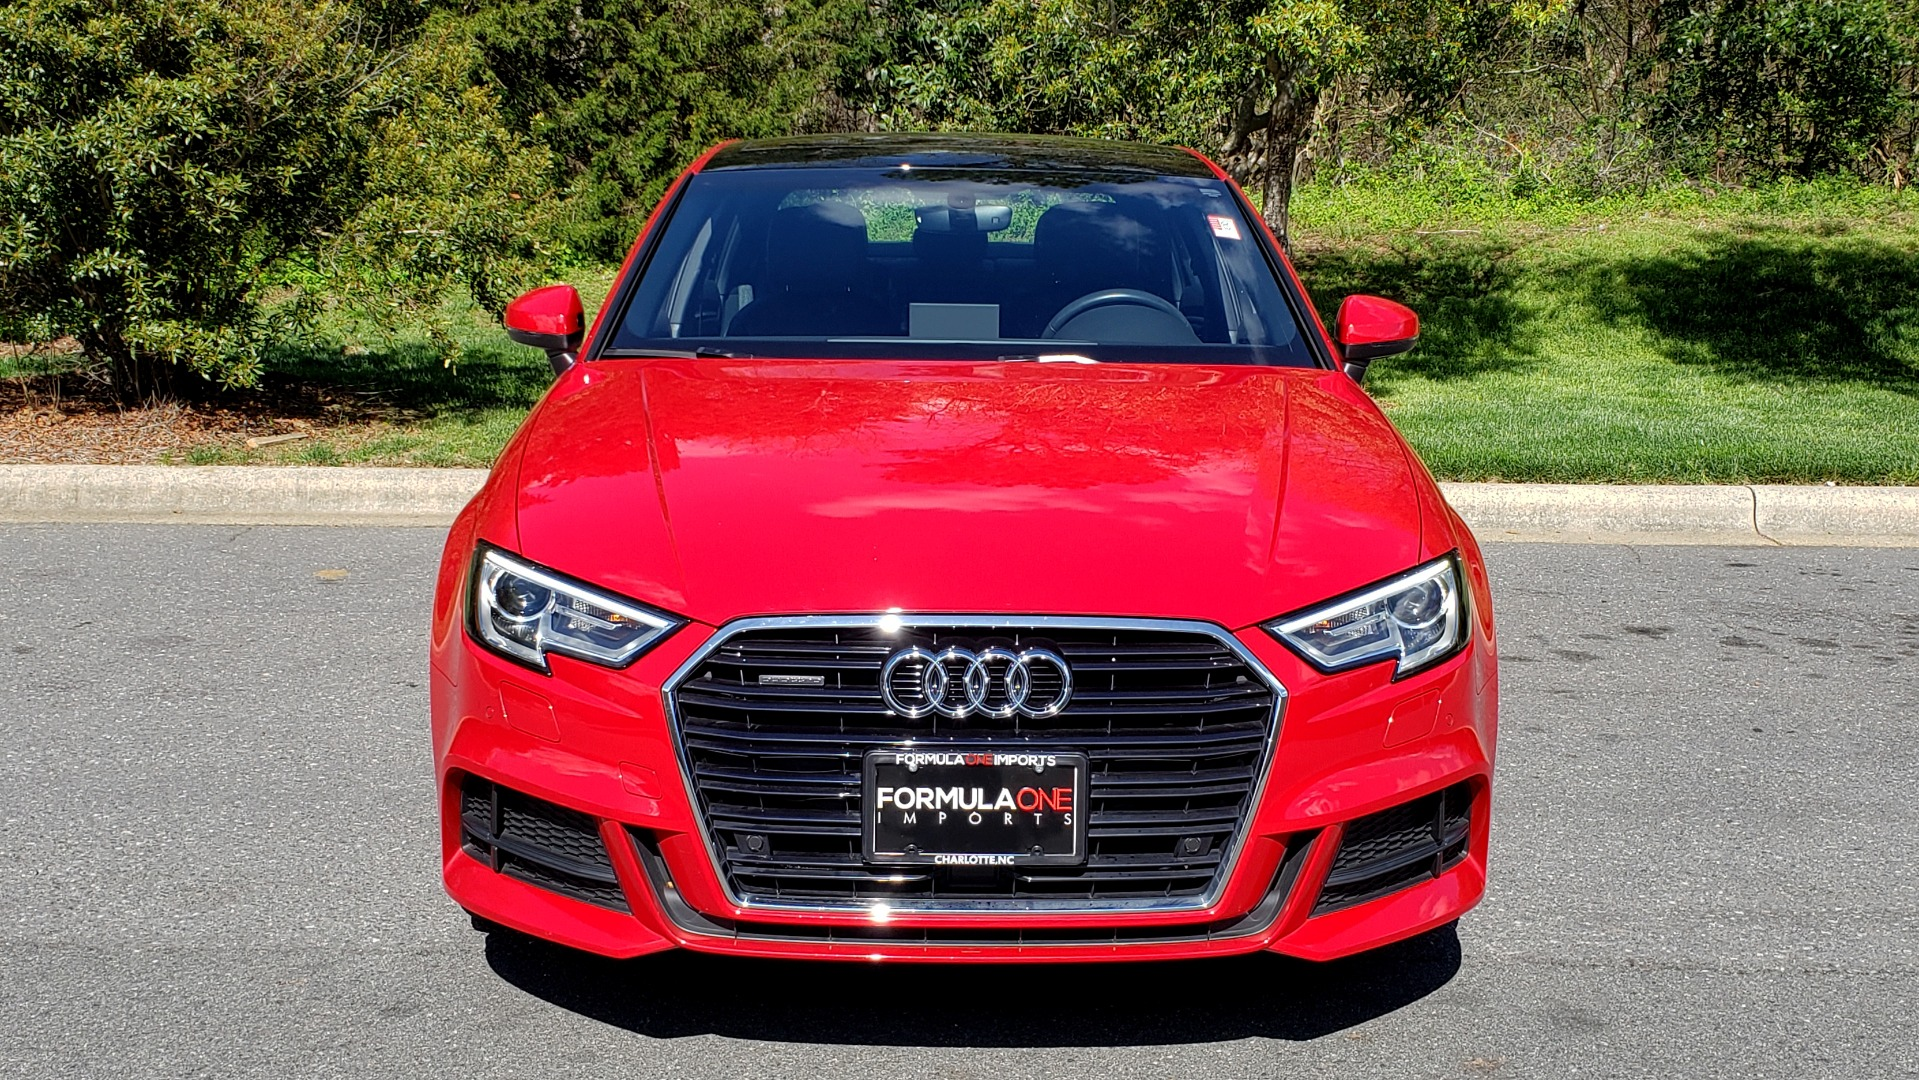 Used 2017 Audi A3 SEDAN PREMIUM PLUS / S-TRONIC / NAV / TECH / SUNROOF / REARVIEW for sale Sold at Formula Imports in Charlotte NC 28227 16